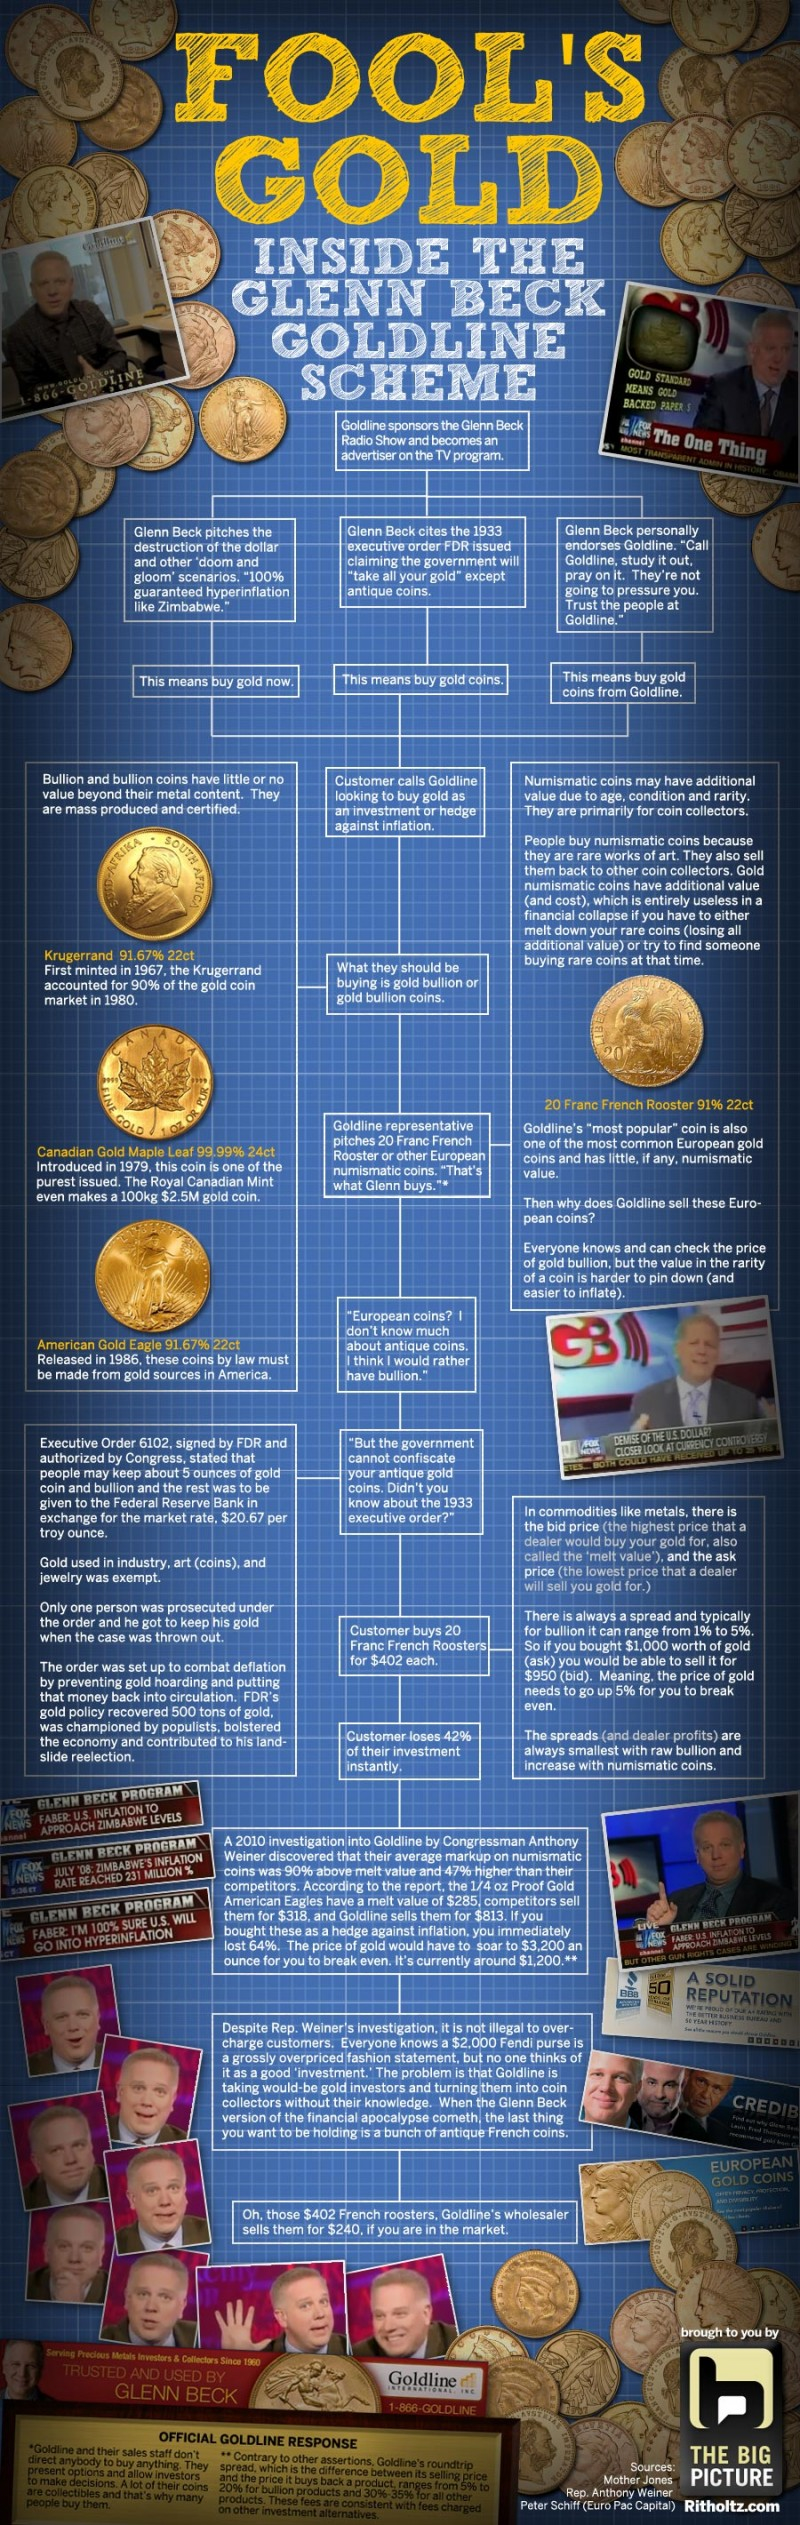 Fools Gold: Inside the Glenn Beck Goldline Scheme [Infographic]